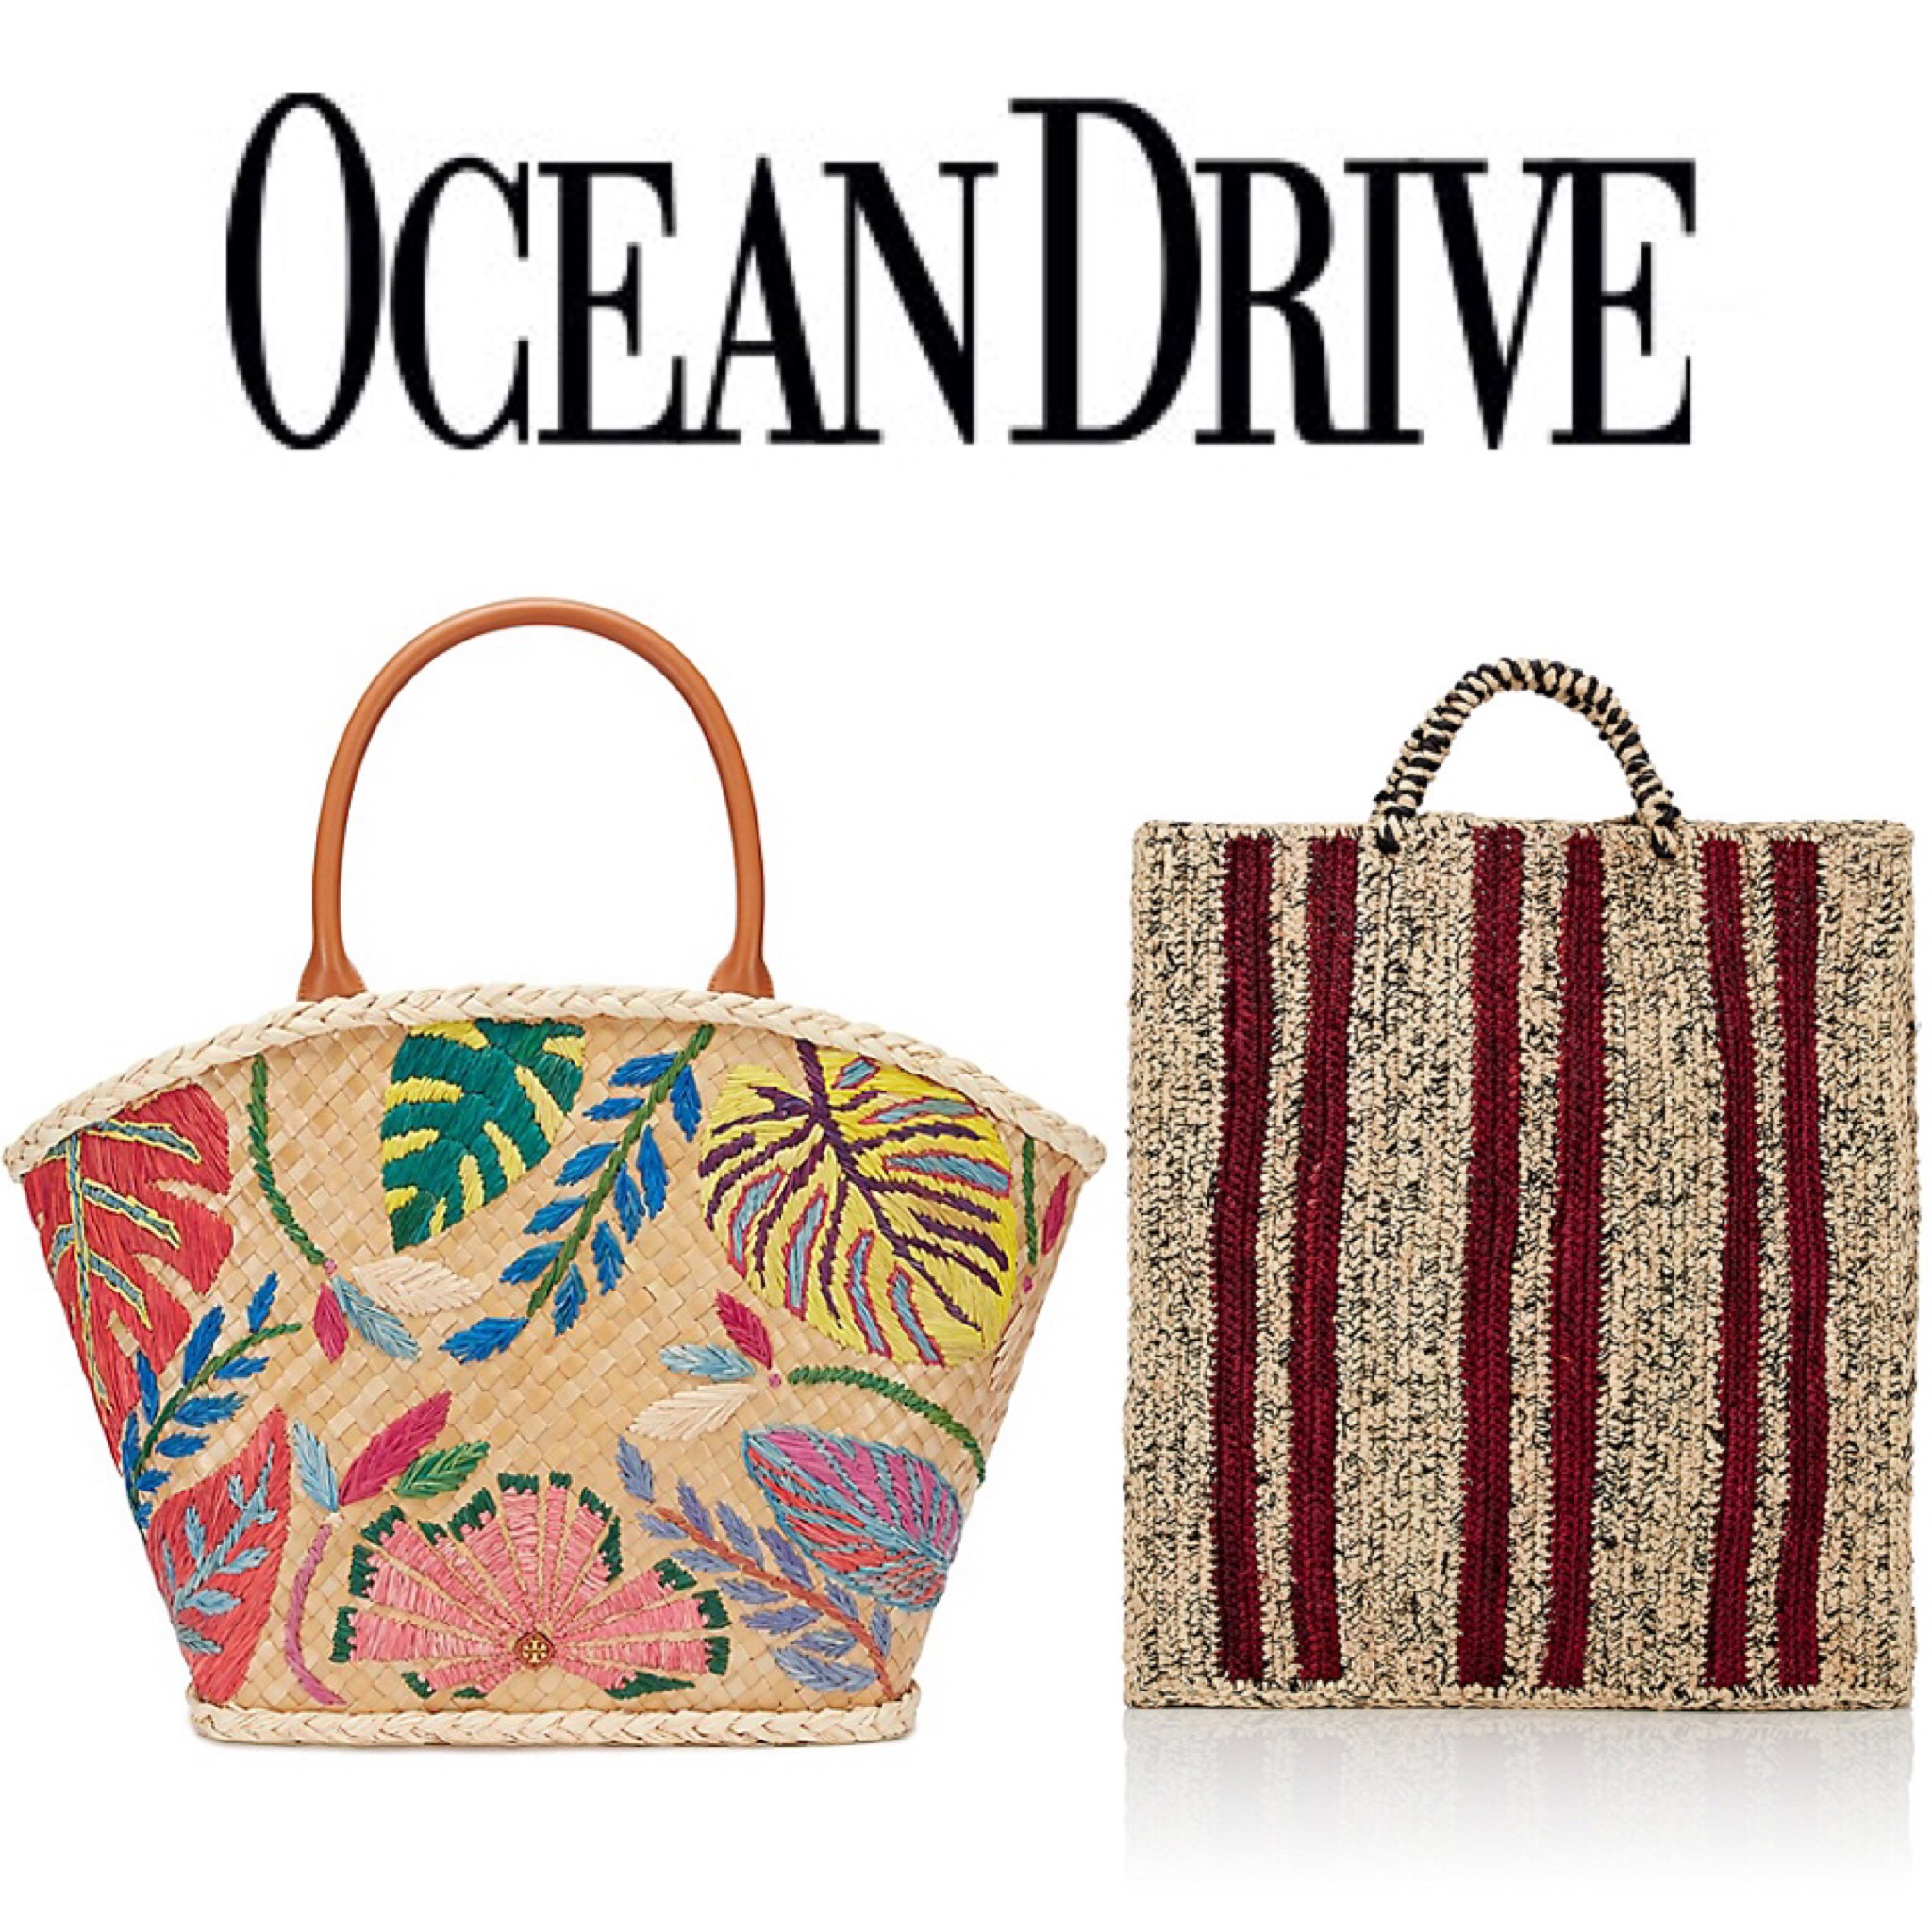 https://oceandrive.com/best-beach-bags-to-carry-this-summer